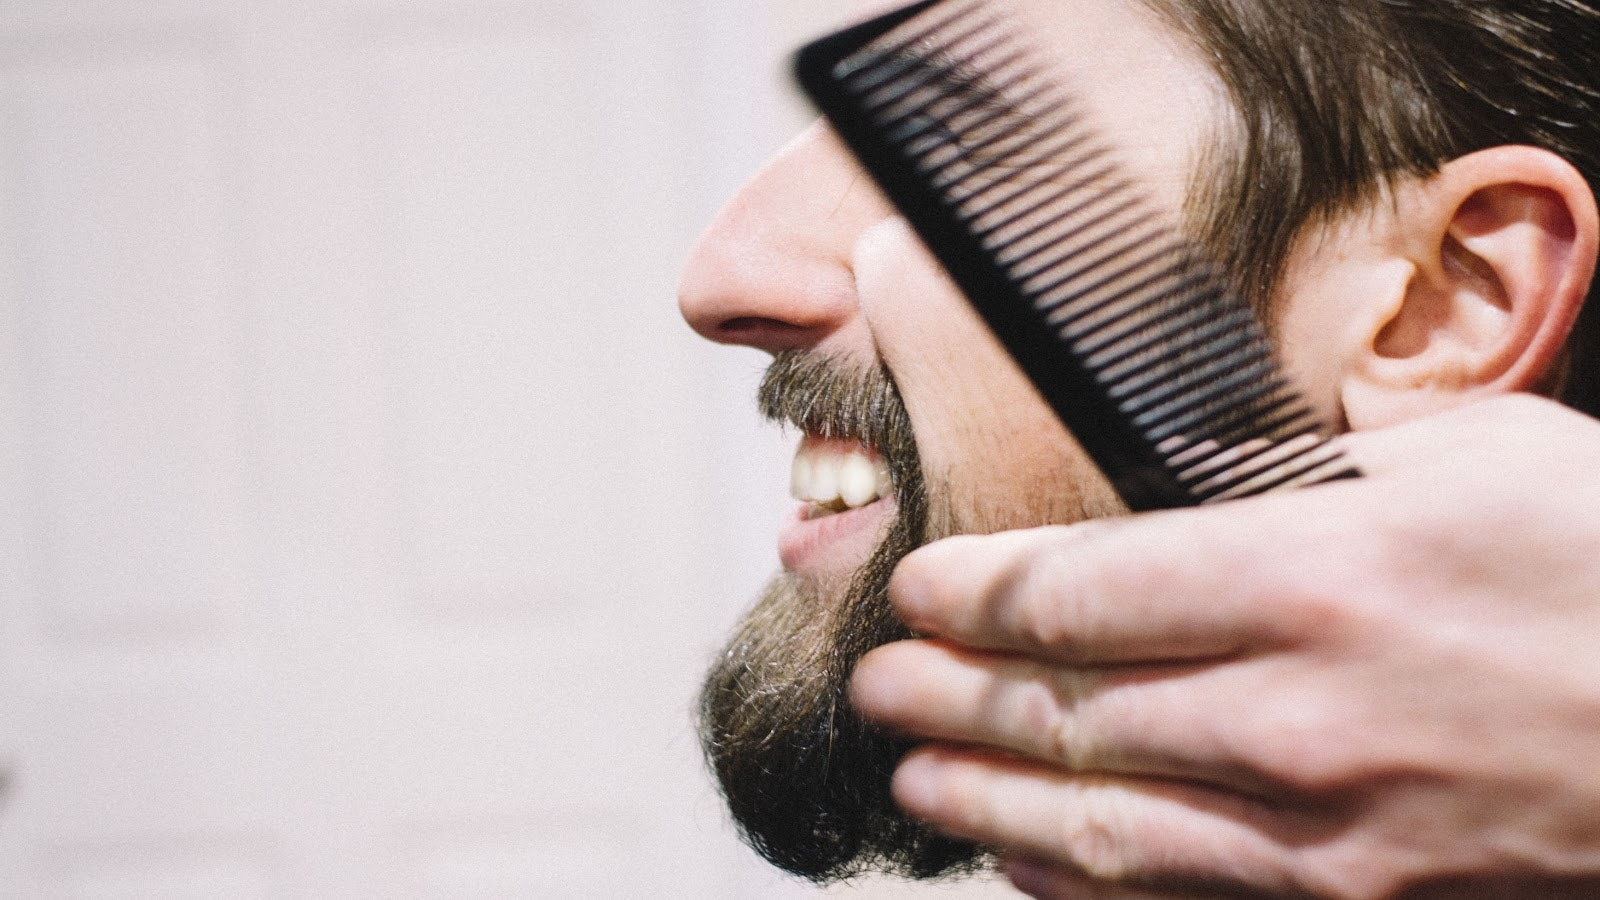 7 Grooming and Aesthetic Treatments Your Dad Would Be Thrilled to Receive For Father's Day